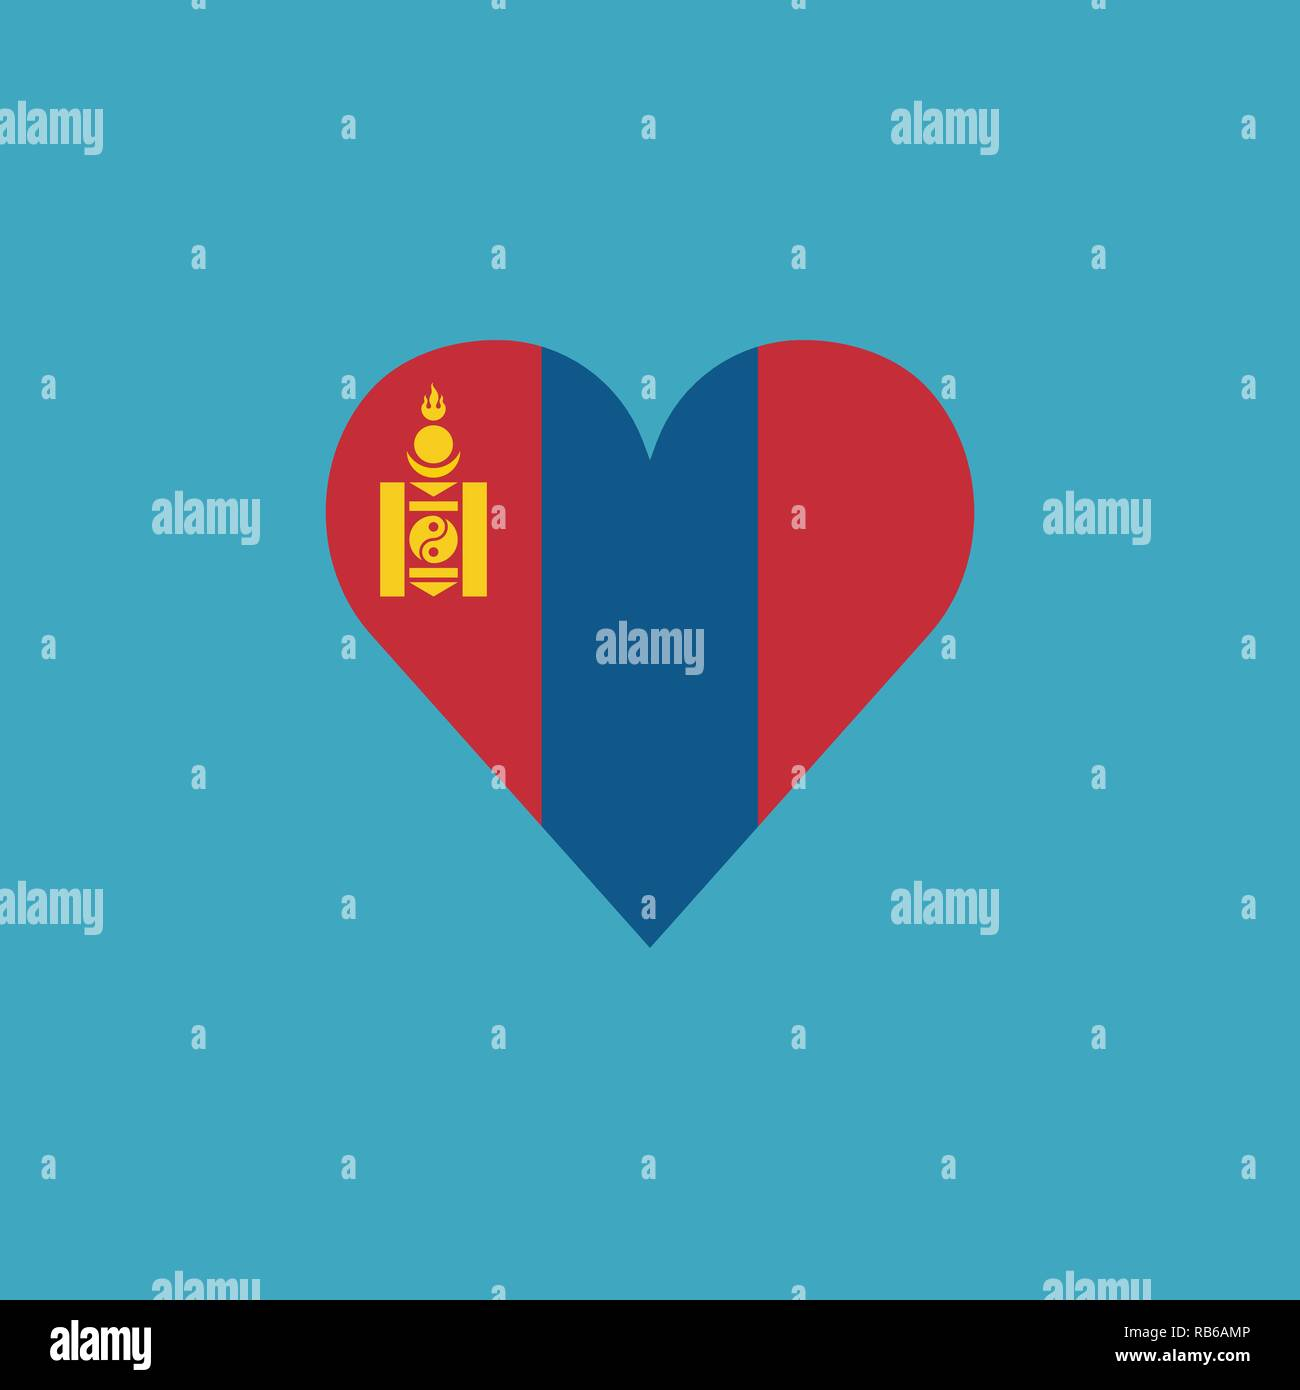 Mongolia flag icon in a heart shape in flat design. Independence day or National day holiday concept. - Stock Vector